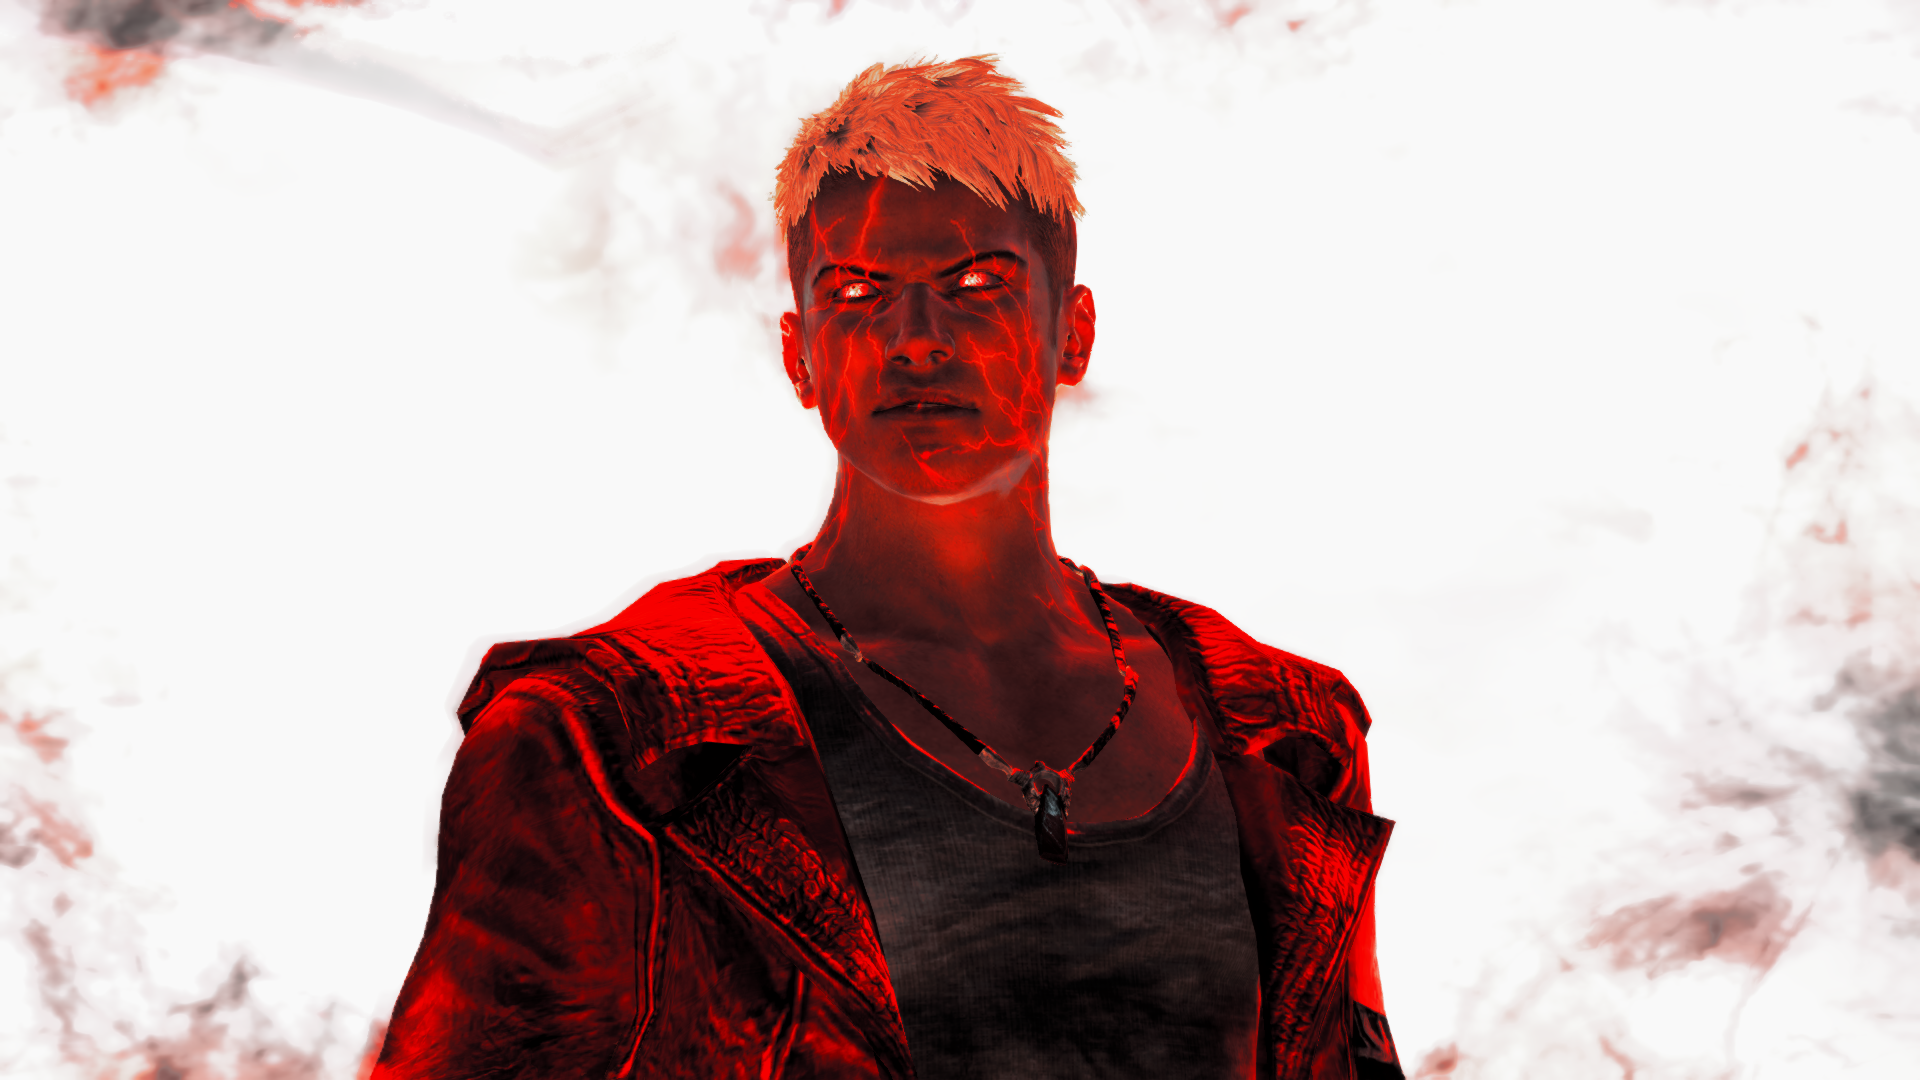 Devil may cry dmc v wallpaper 1920x1080 91779 wallpaperup voltagebd Image collections